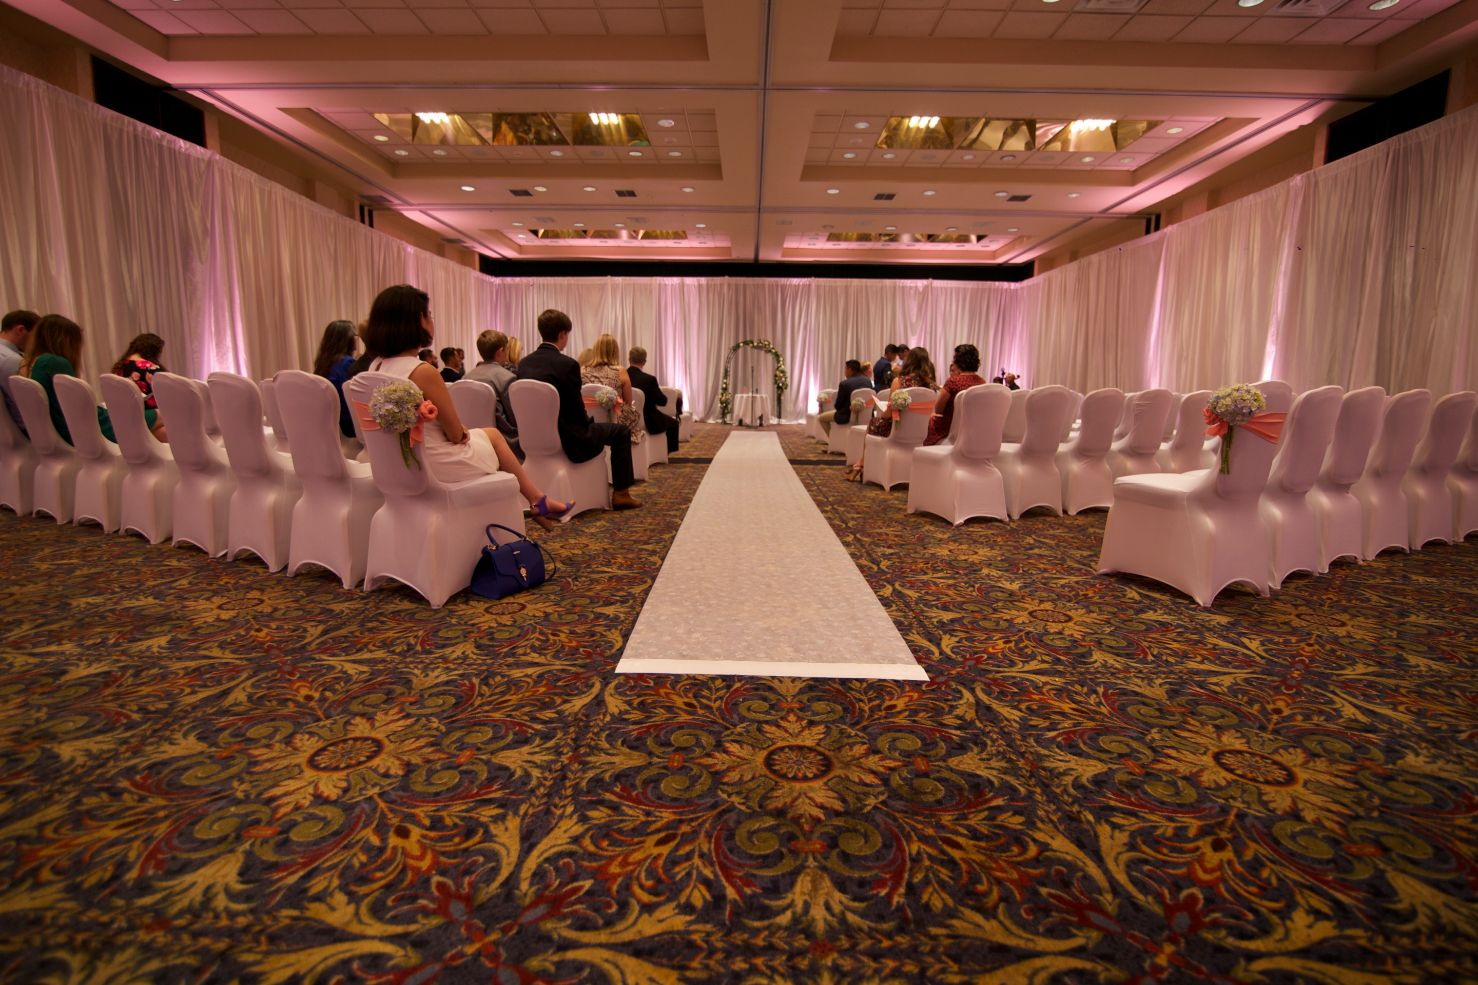 pipe drape 2 xclusive deejays winter springs florida wedding dj lighting photo booth entertainment